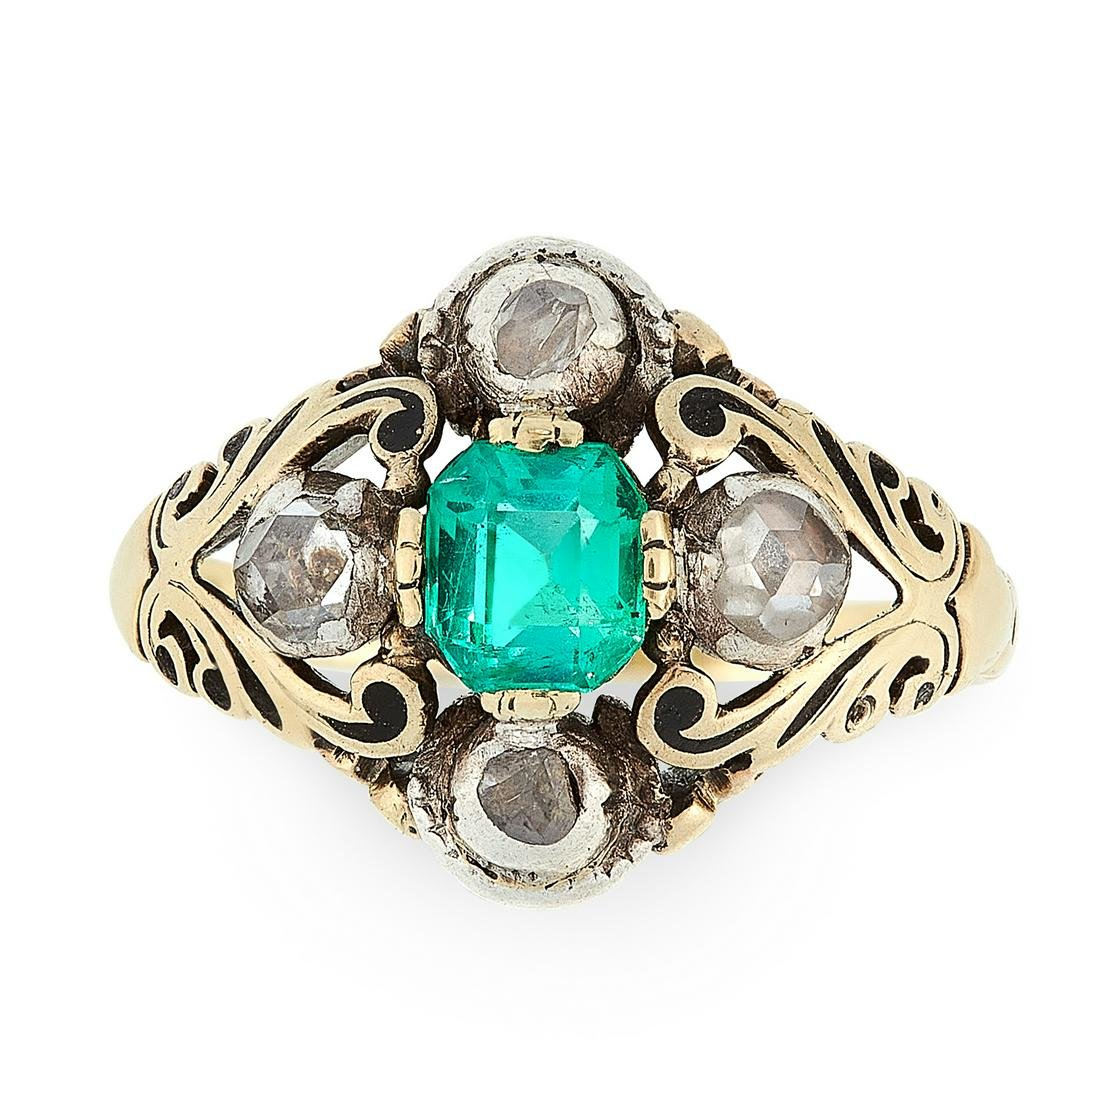 AN ANTIQUE EMERALD AND DIAMOND RING, 19TH CENTURY in